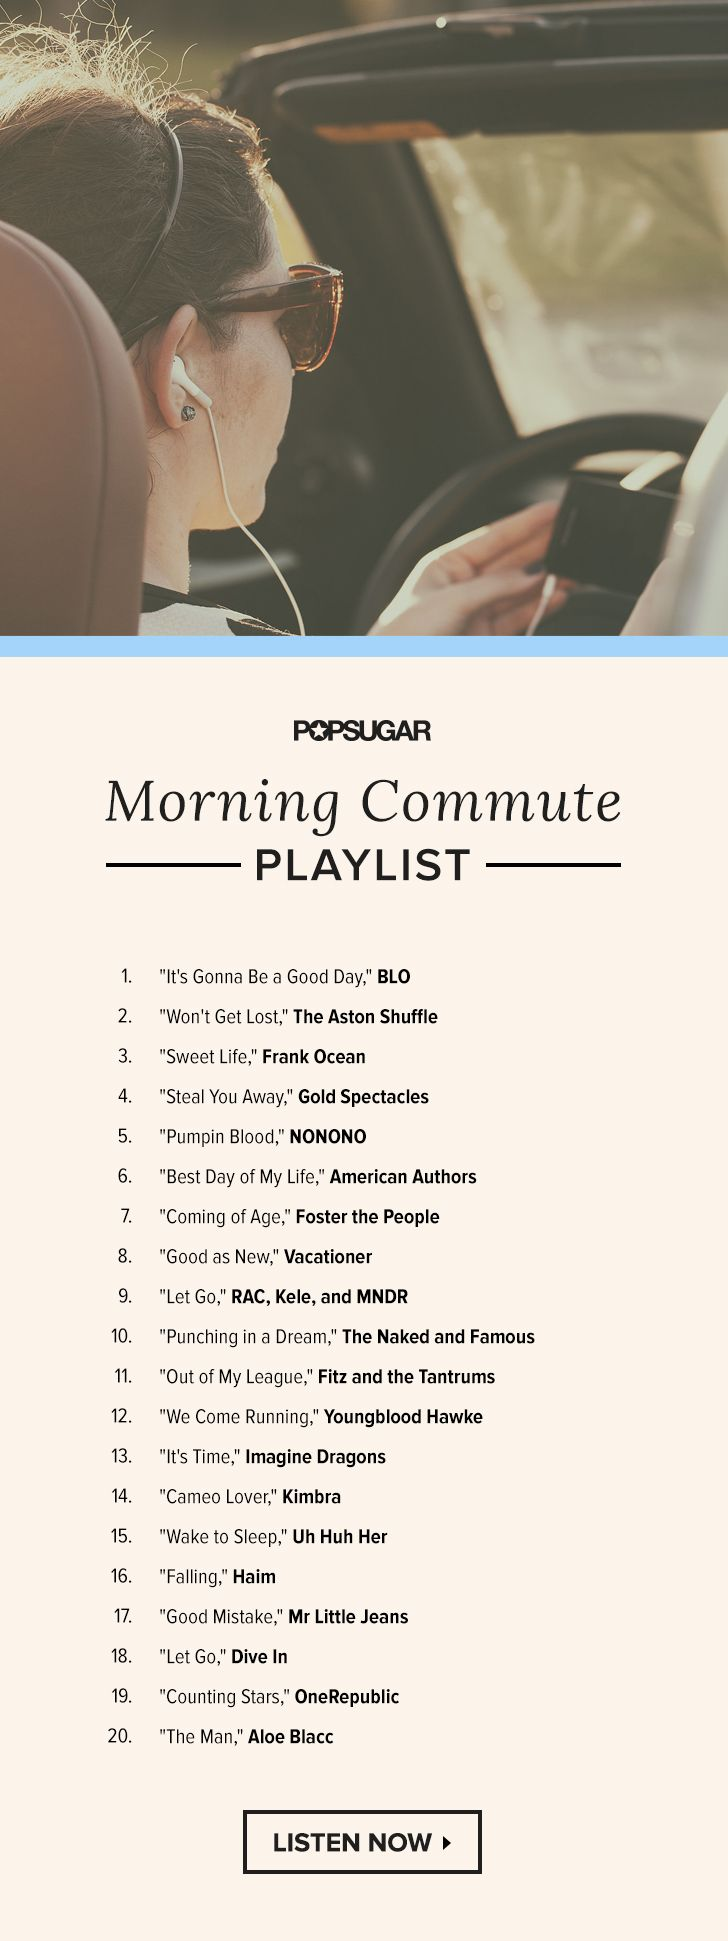 Sometimes the worst part about work is actually getting there, especially on Mondays. Start your day off right with these 20 songs, and we promise you won't even think about hitting snooze.